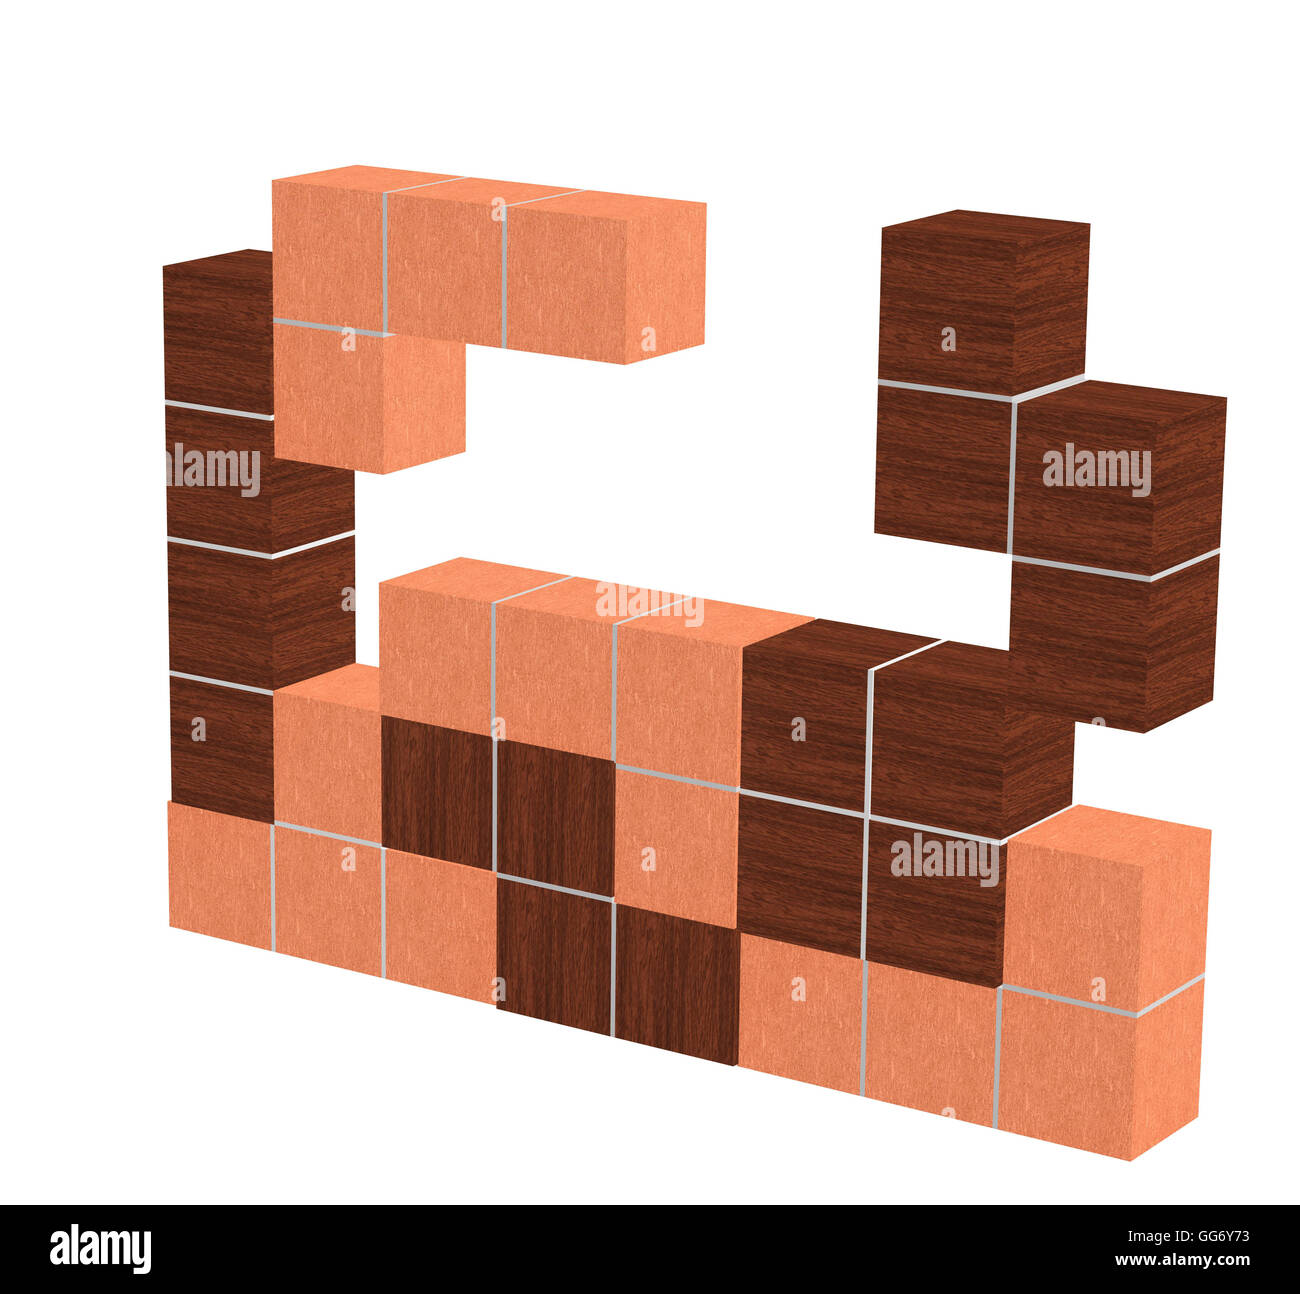 3d cubes icon stockfotos 3d cubes icon bilder alamy. Black Bedroom Furniture Sets. Home Design Ideas